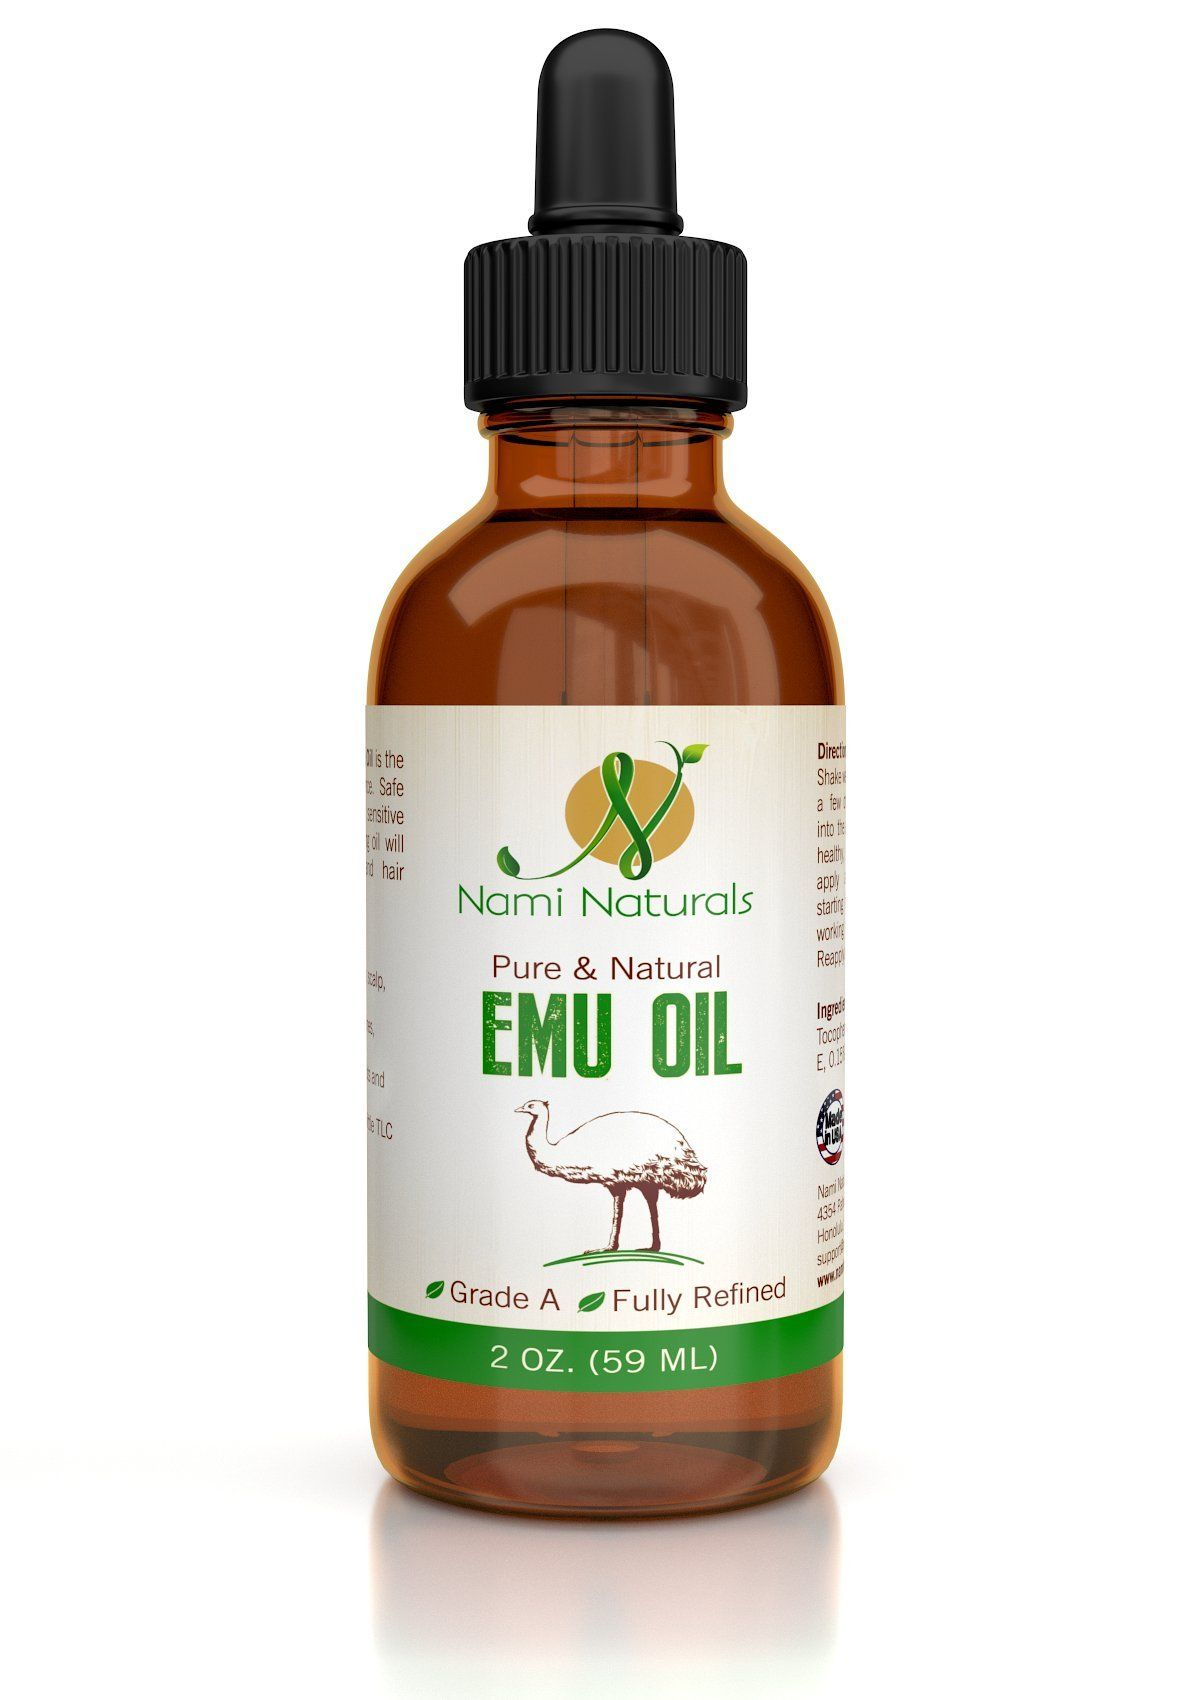 Nami Naturals Emu Oil For Hair Growth, Skin Care